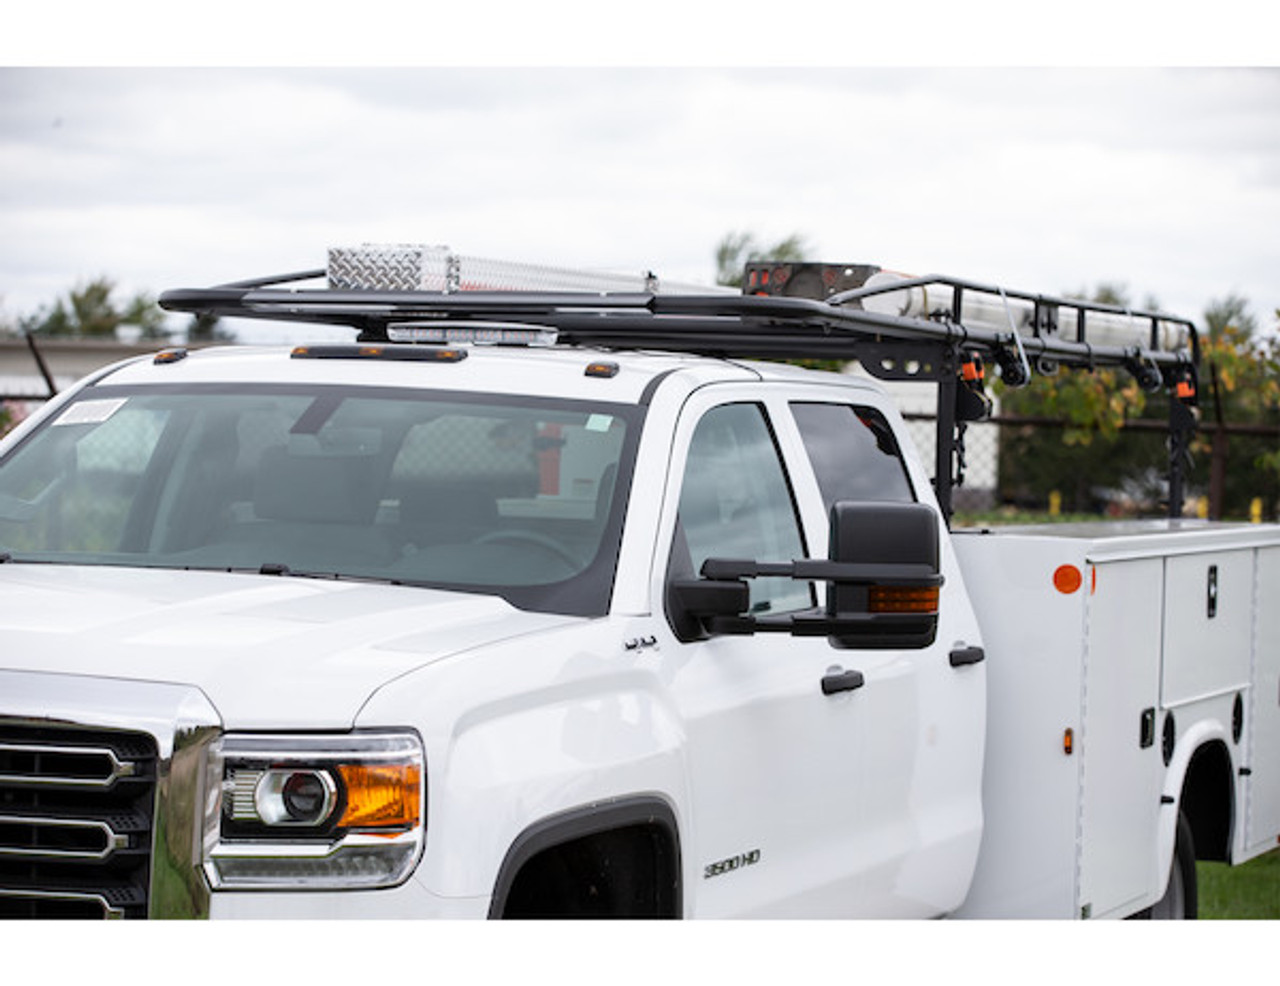 BUYERS 1501260 14-1/2 Foot Black Service Body Ladder Rack for Movers, Contractors, Construction, Painters Picture # 1